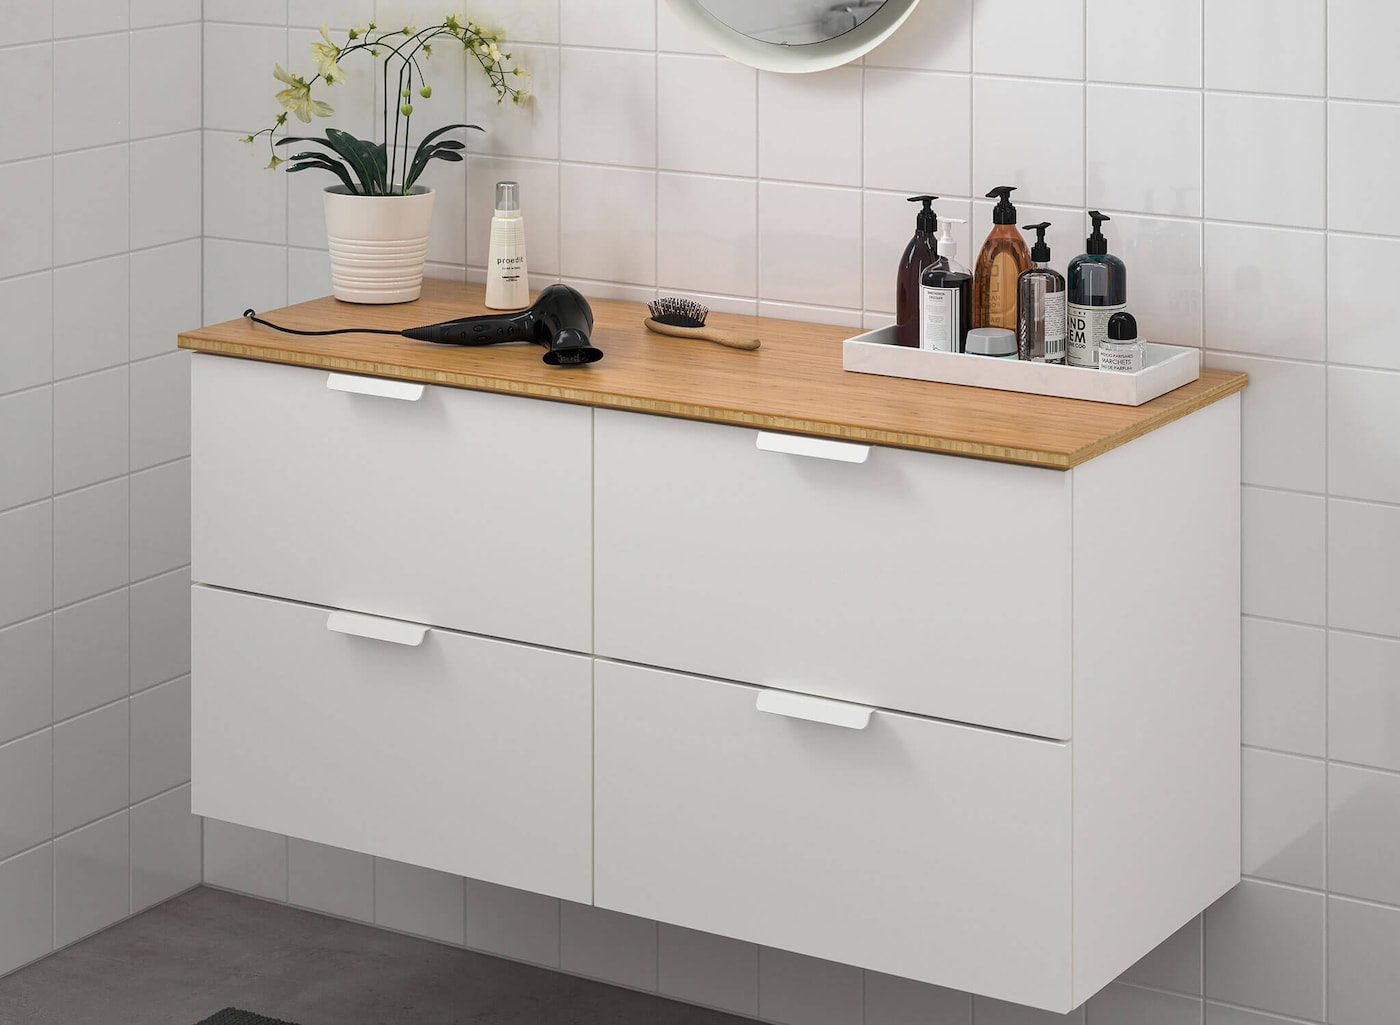 A white cabinet mounted on the wall with four drawers and a wood counter top, and various bathroom accessories on top.